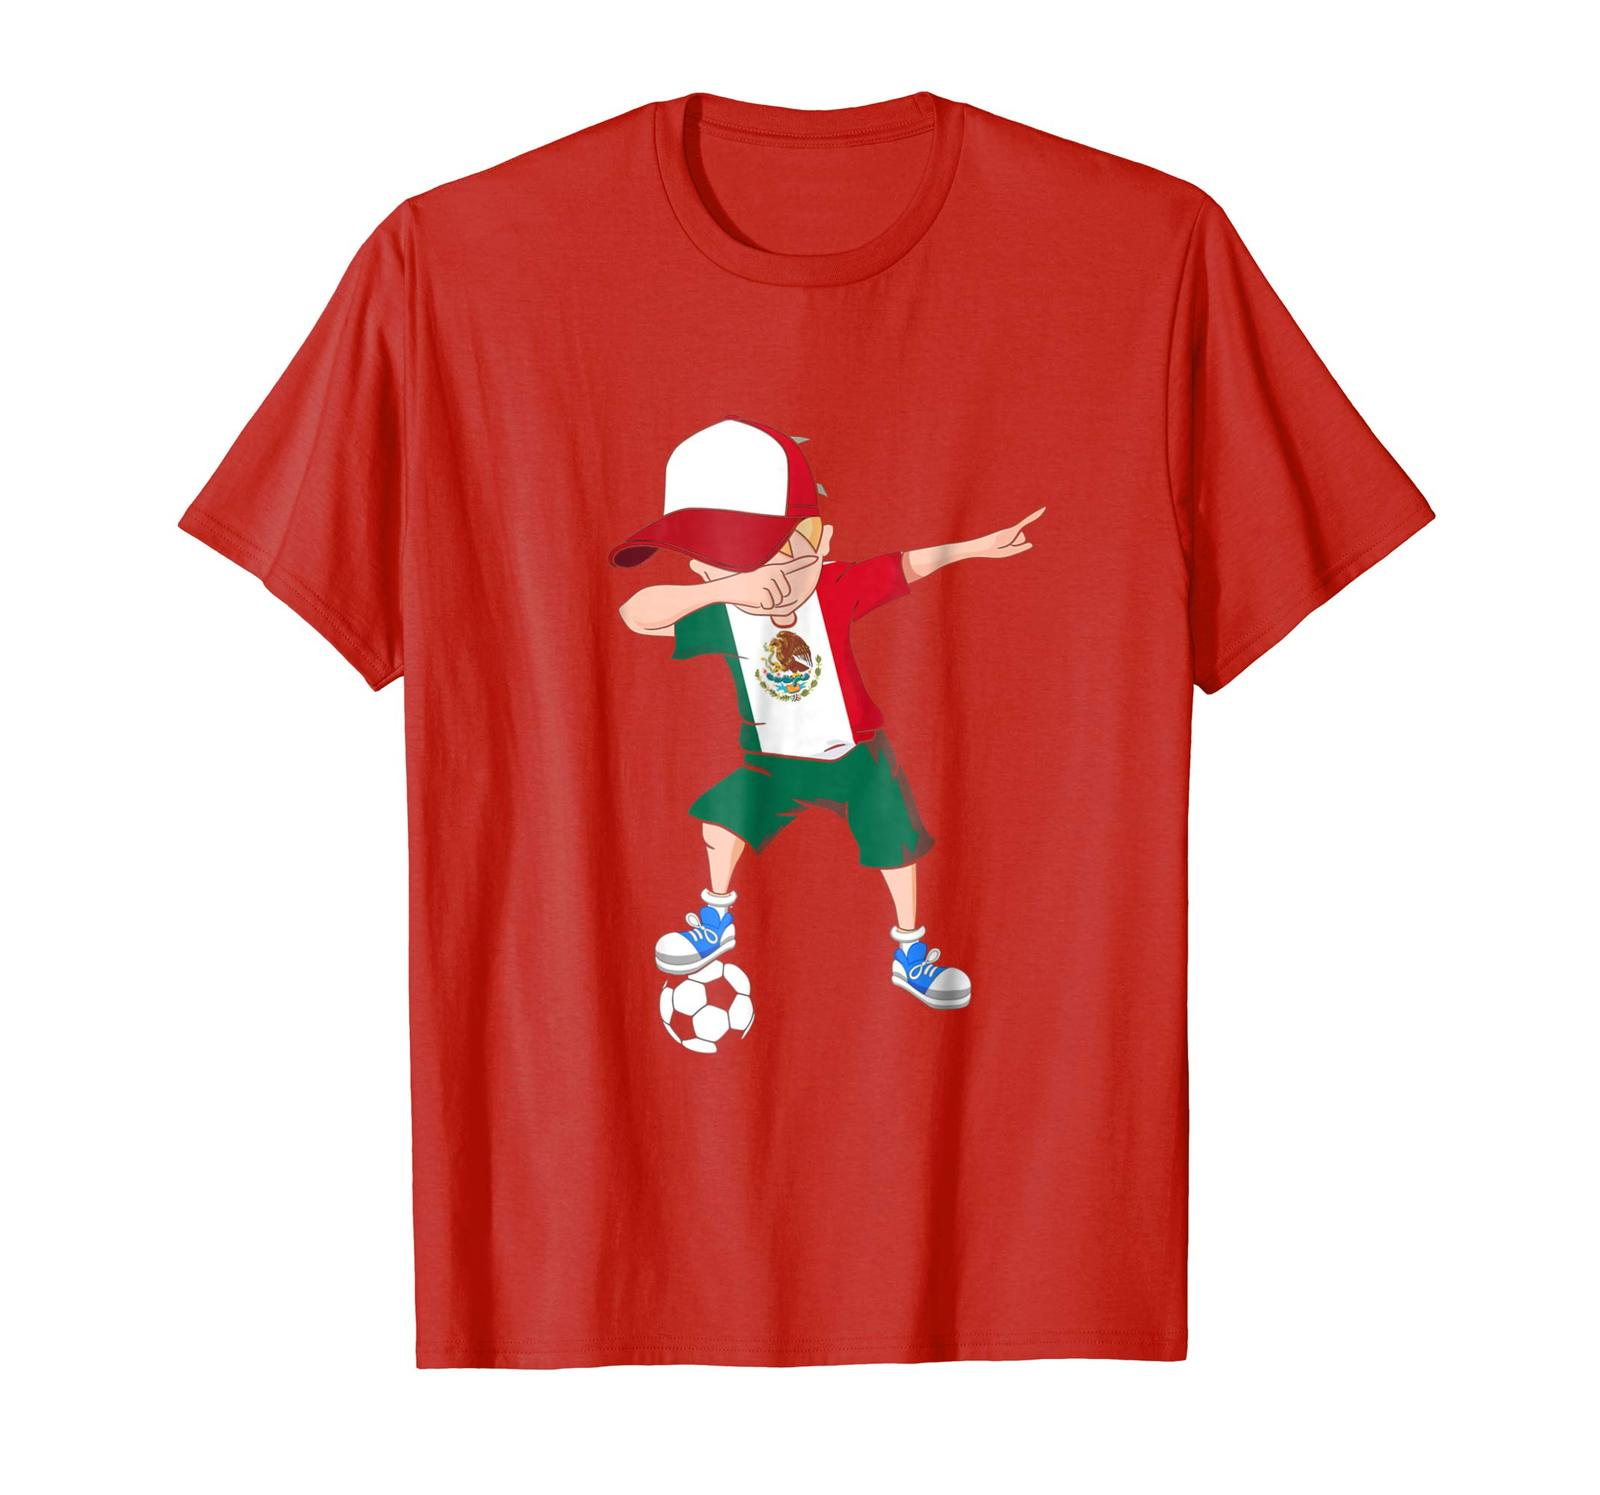 d1a9871ba28 Special shirts - Dabbing Soccer Boy Mexico and similar items. B19qdr75ots.  cla 7c2140 2000 7c81xwcb9cwtl.png 7c0 0 2140 2000 0.0 0.0 2140.0 2000.0